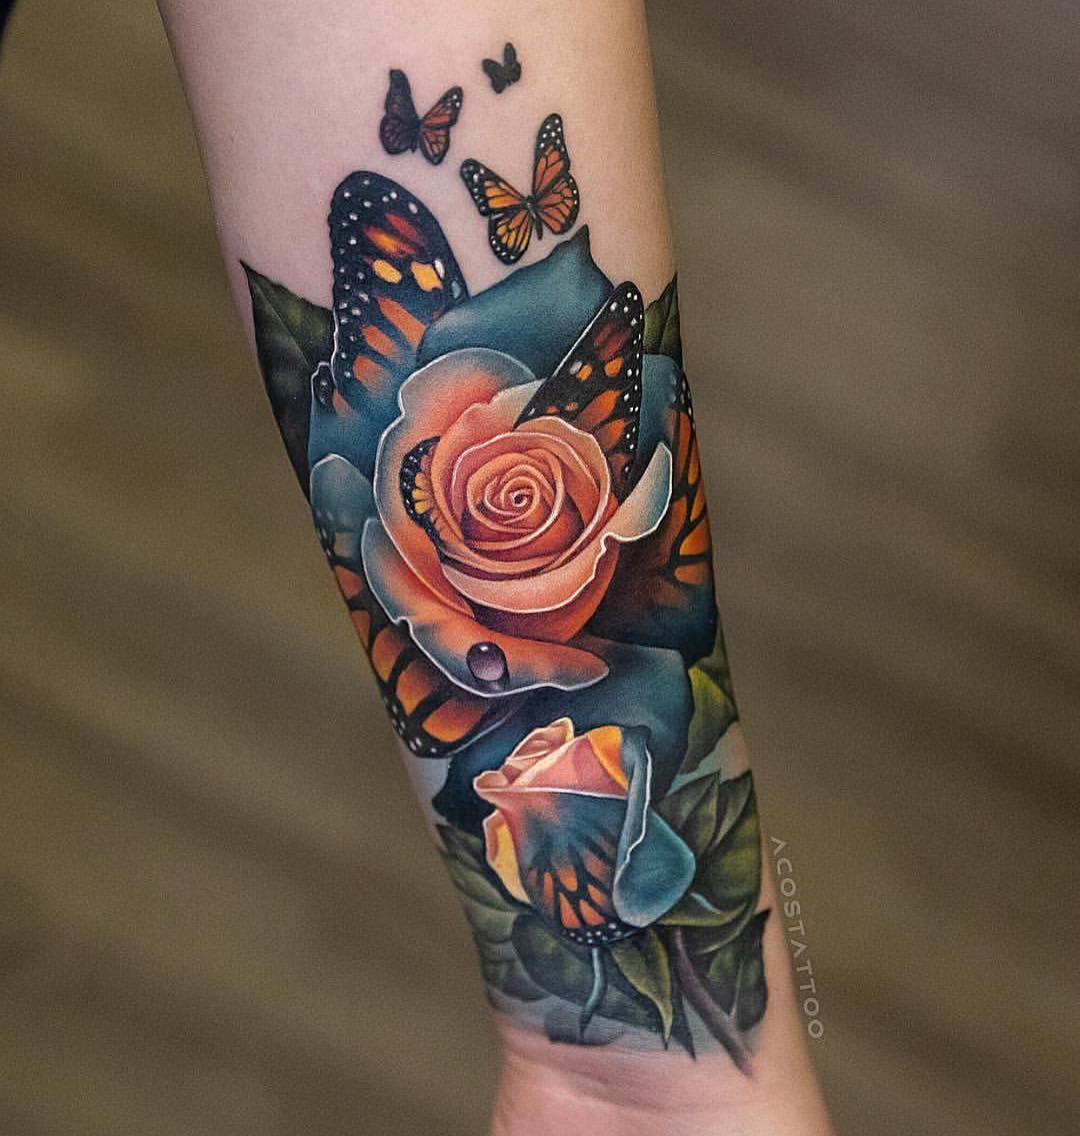 Butterfly rose by acostattoo in 2020 cover tattoo